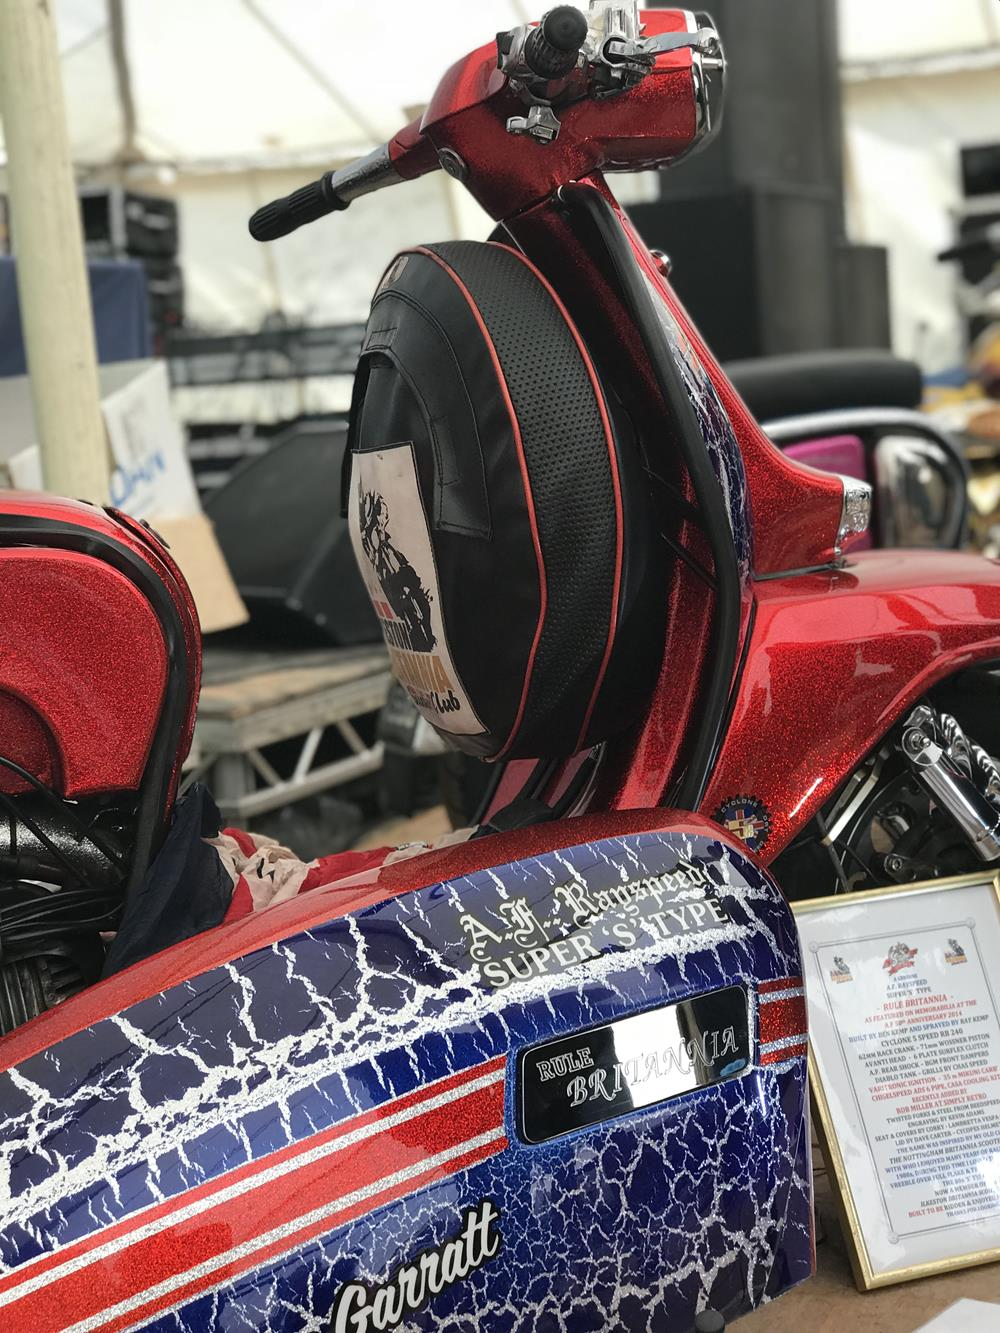 Rule Britannia custom Lambretta in red, silver and blue vreeble paintwork over metalflake base